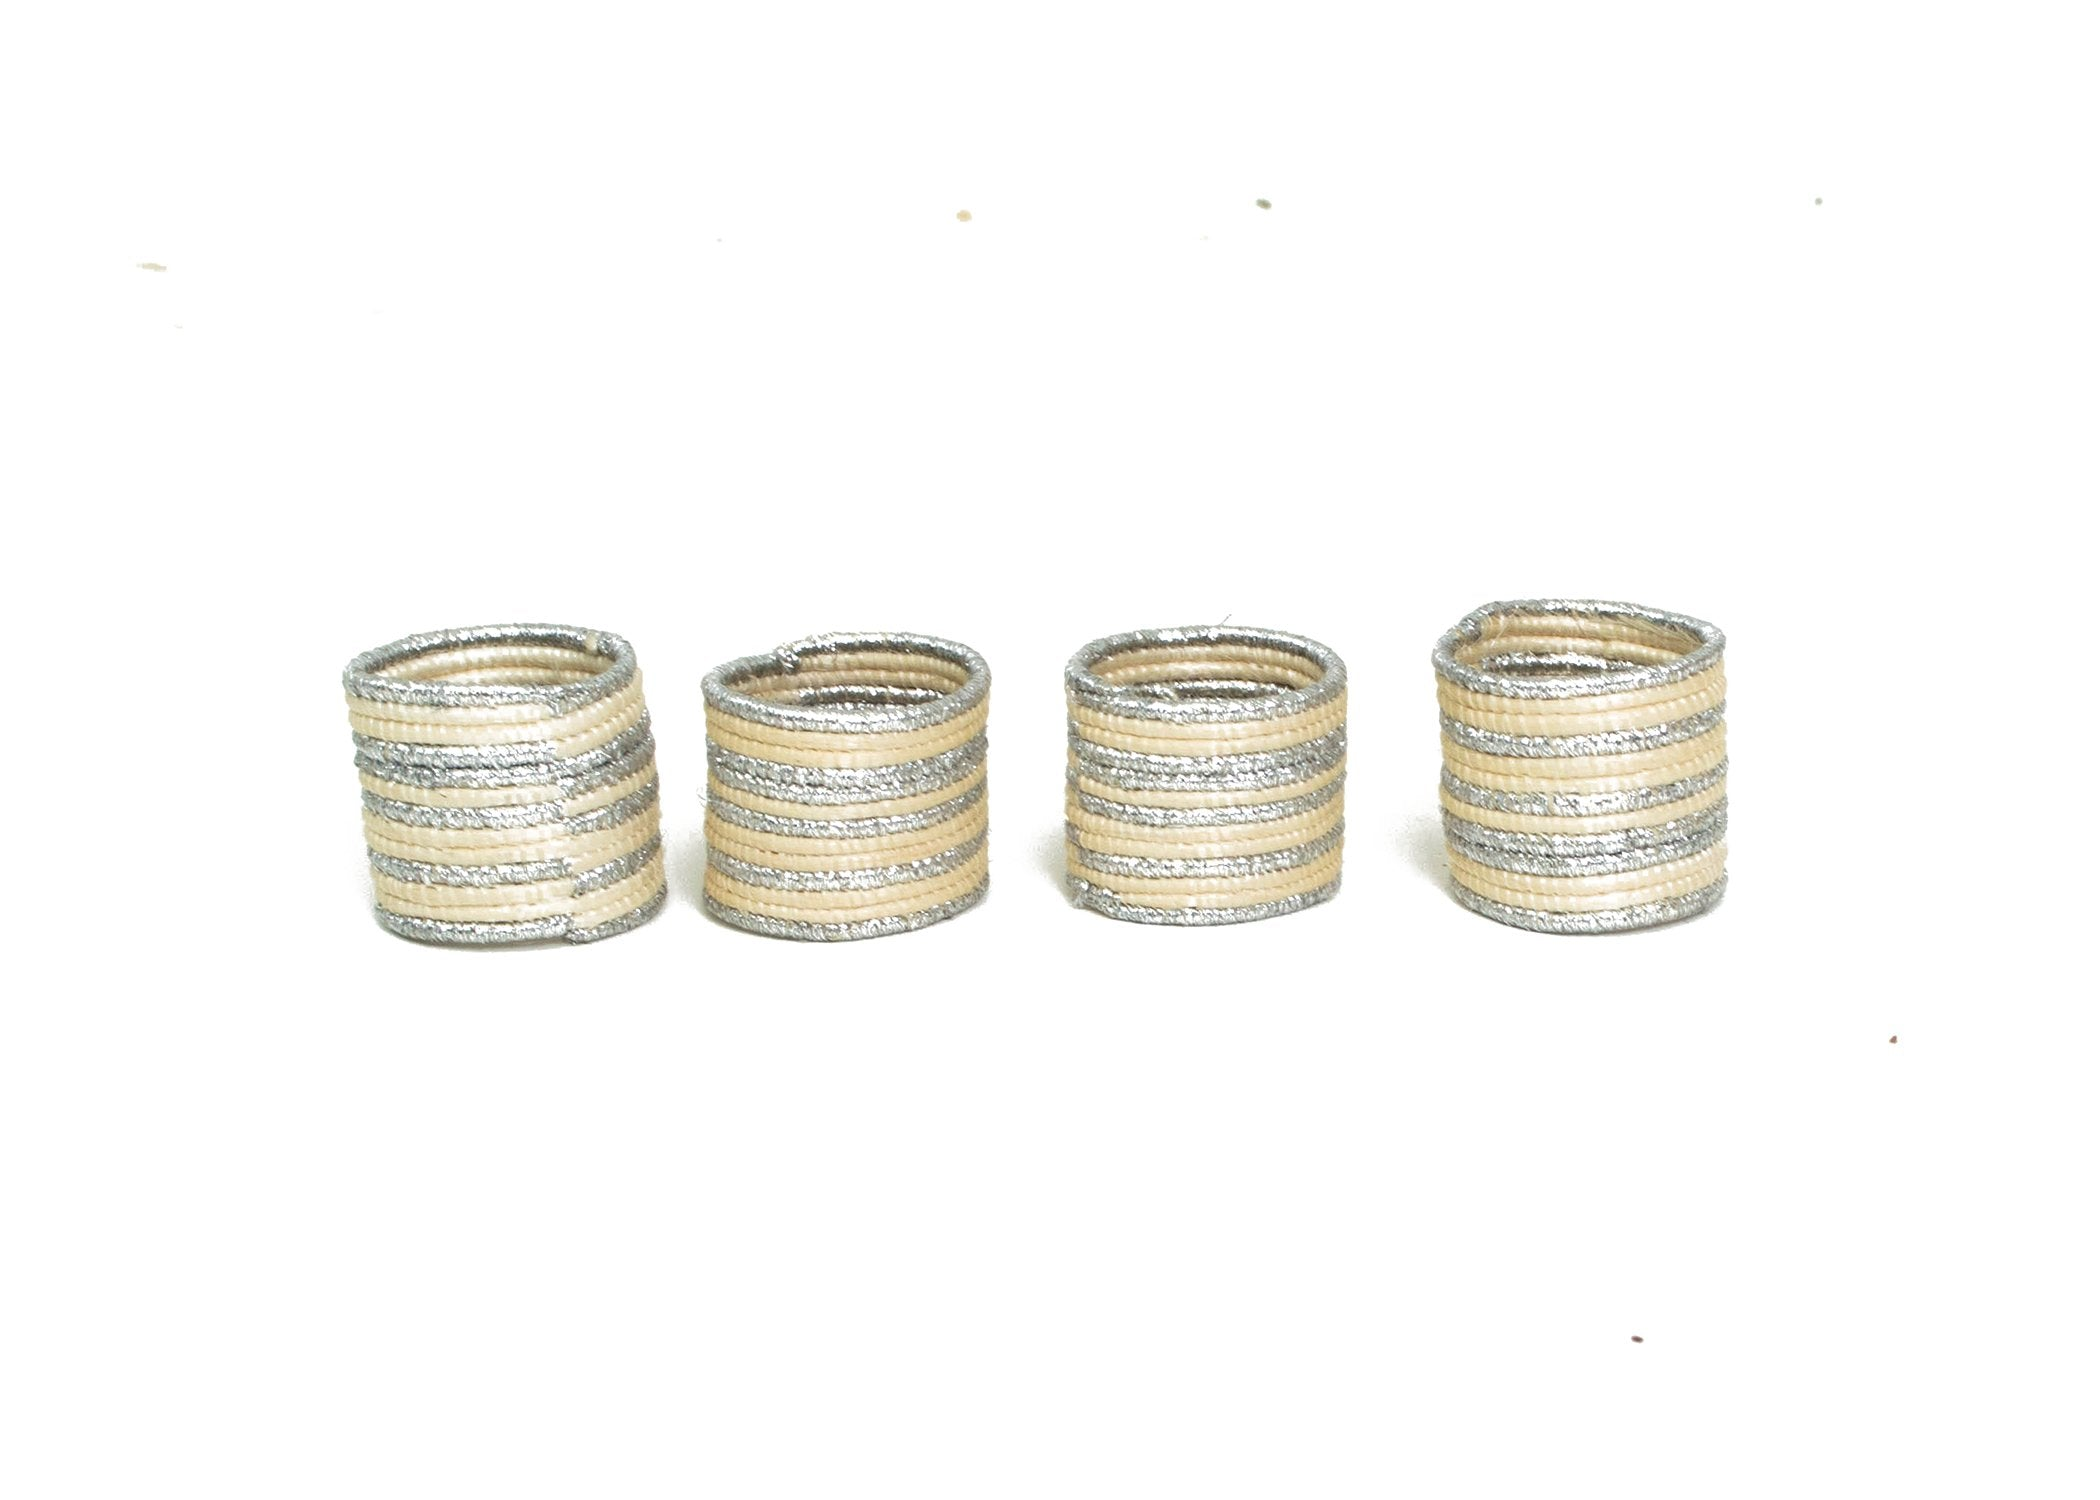 Metallic Silver Napkin Rings, Set of 4 - KAZI - Artisan made high quality home decor and wall art